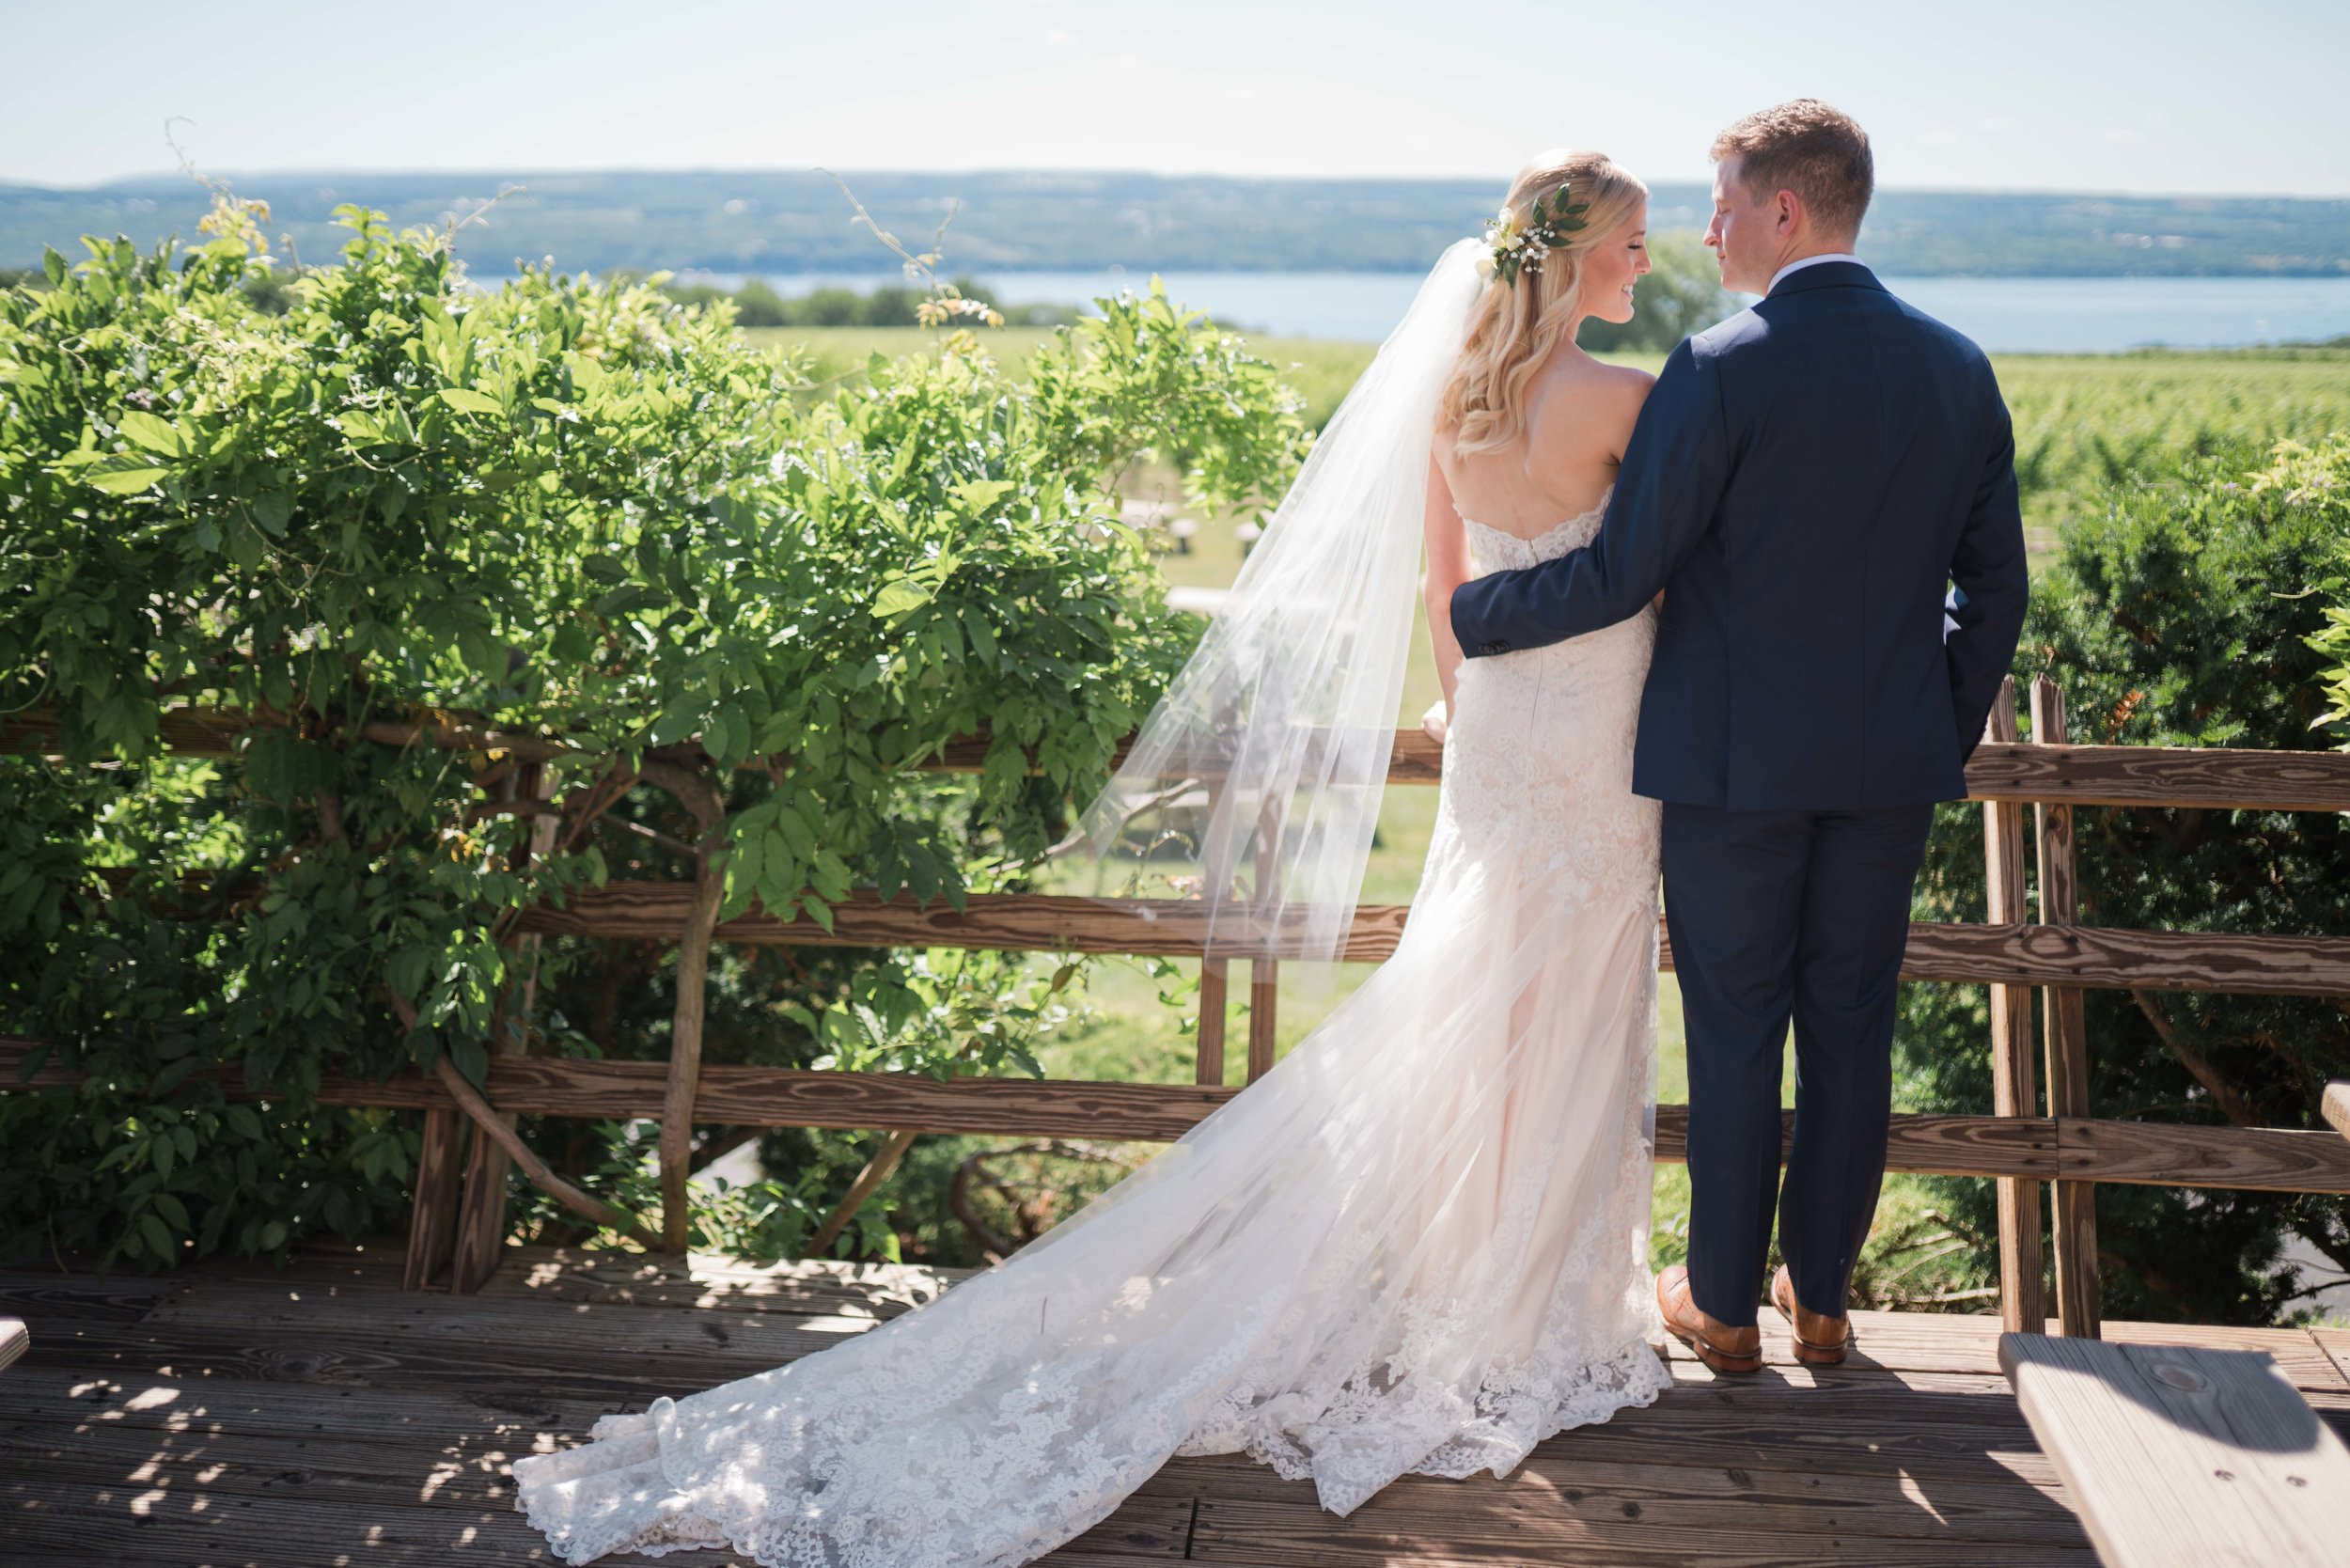 Wedding Photography at Wagner Vineyards Ginny Lee Cafe Finger Lakes by Stefan Ludwig Photography-36.jpg